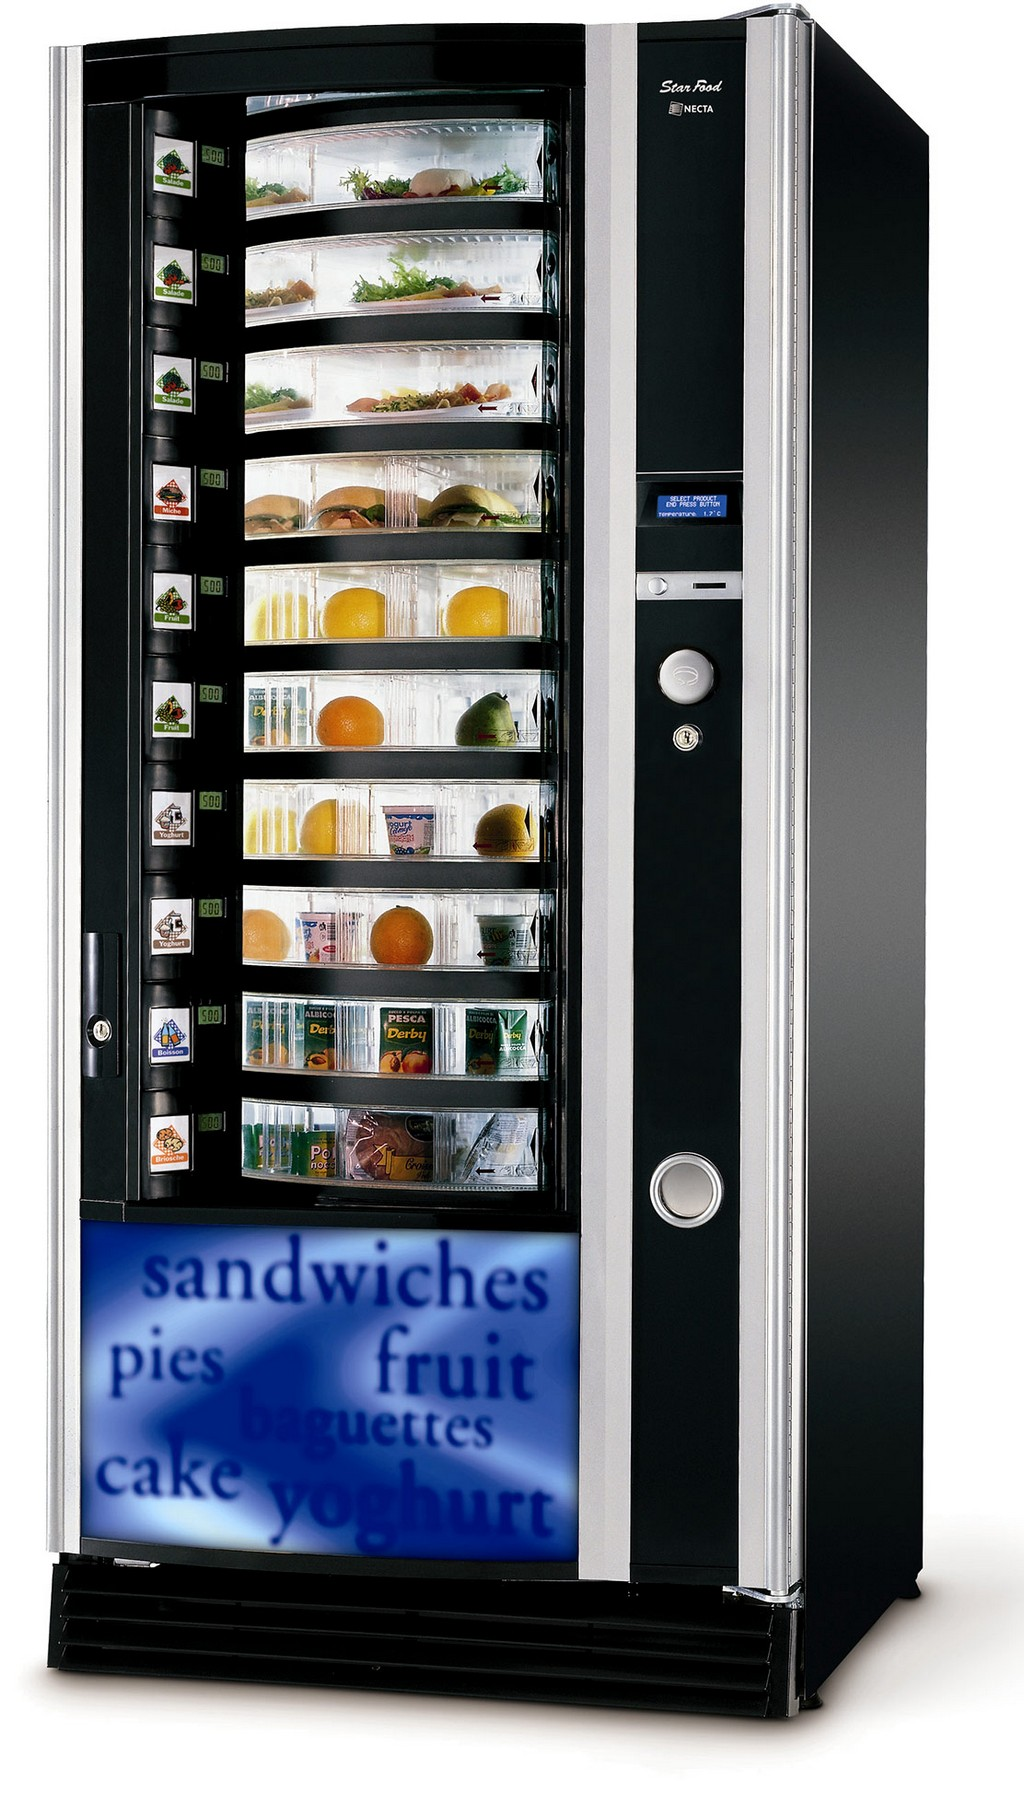 vending machine canada, reverse vending machine, beef jerky vending machine